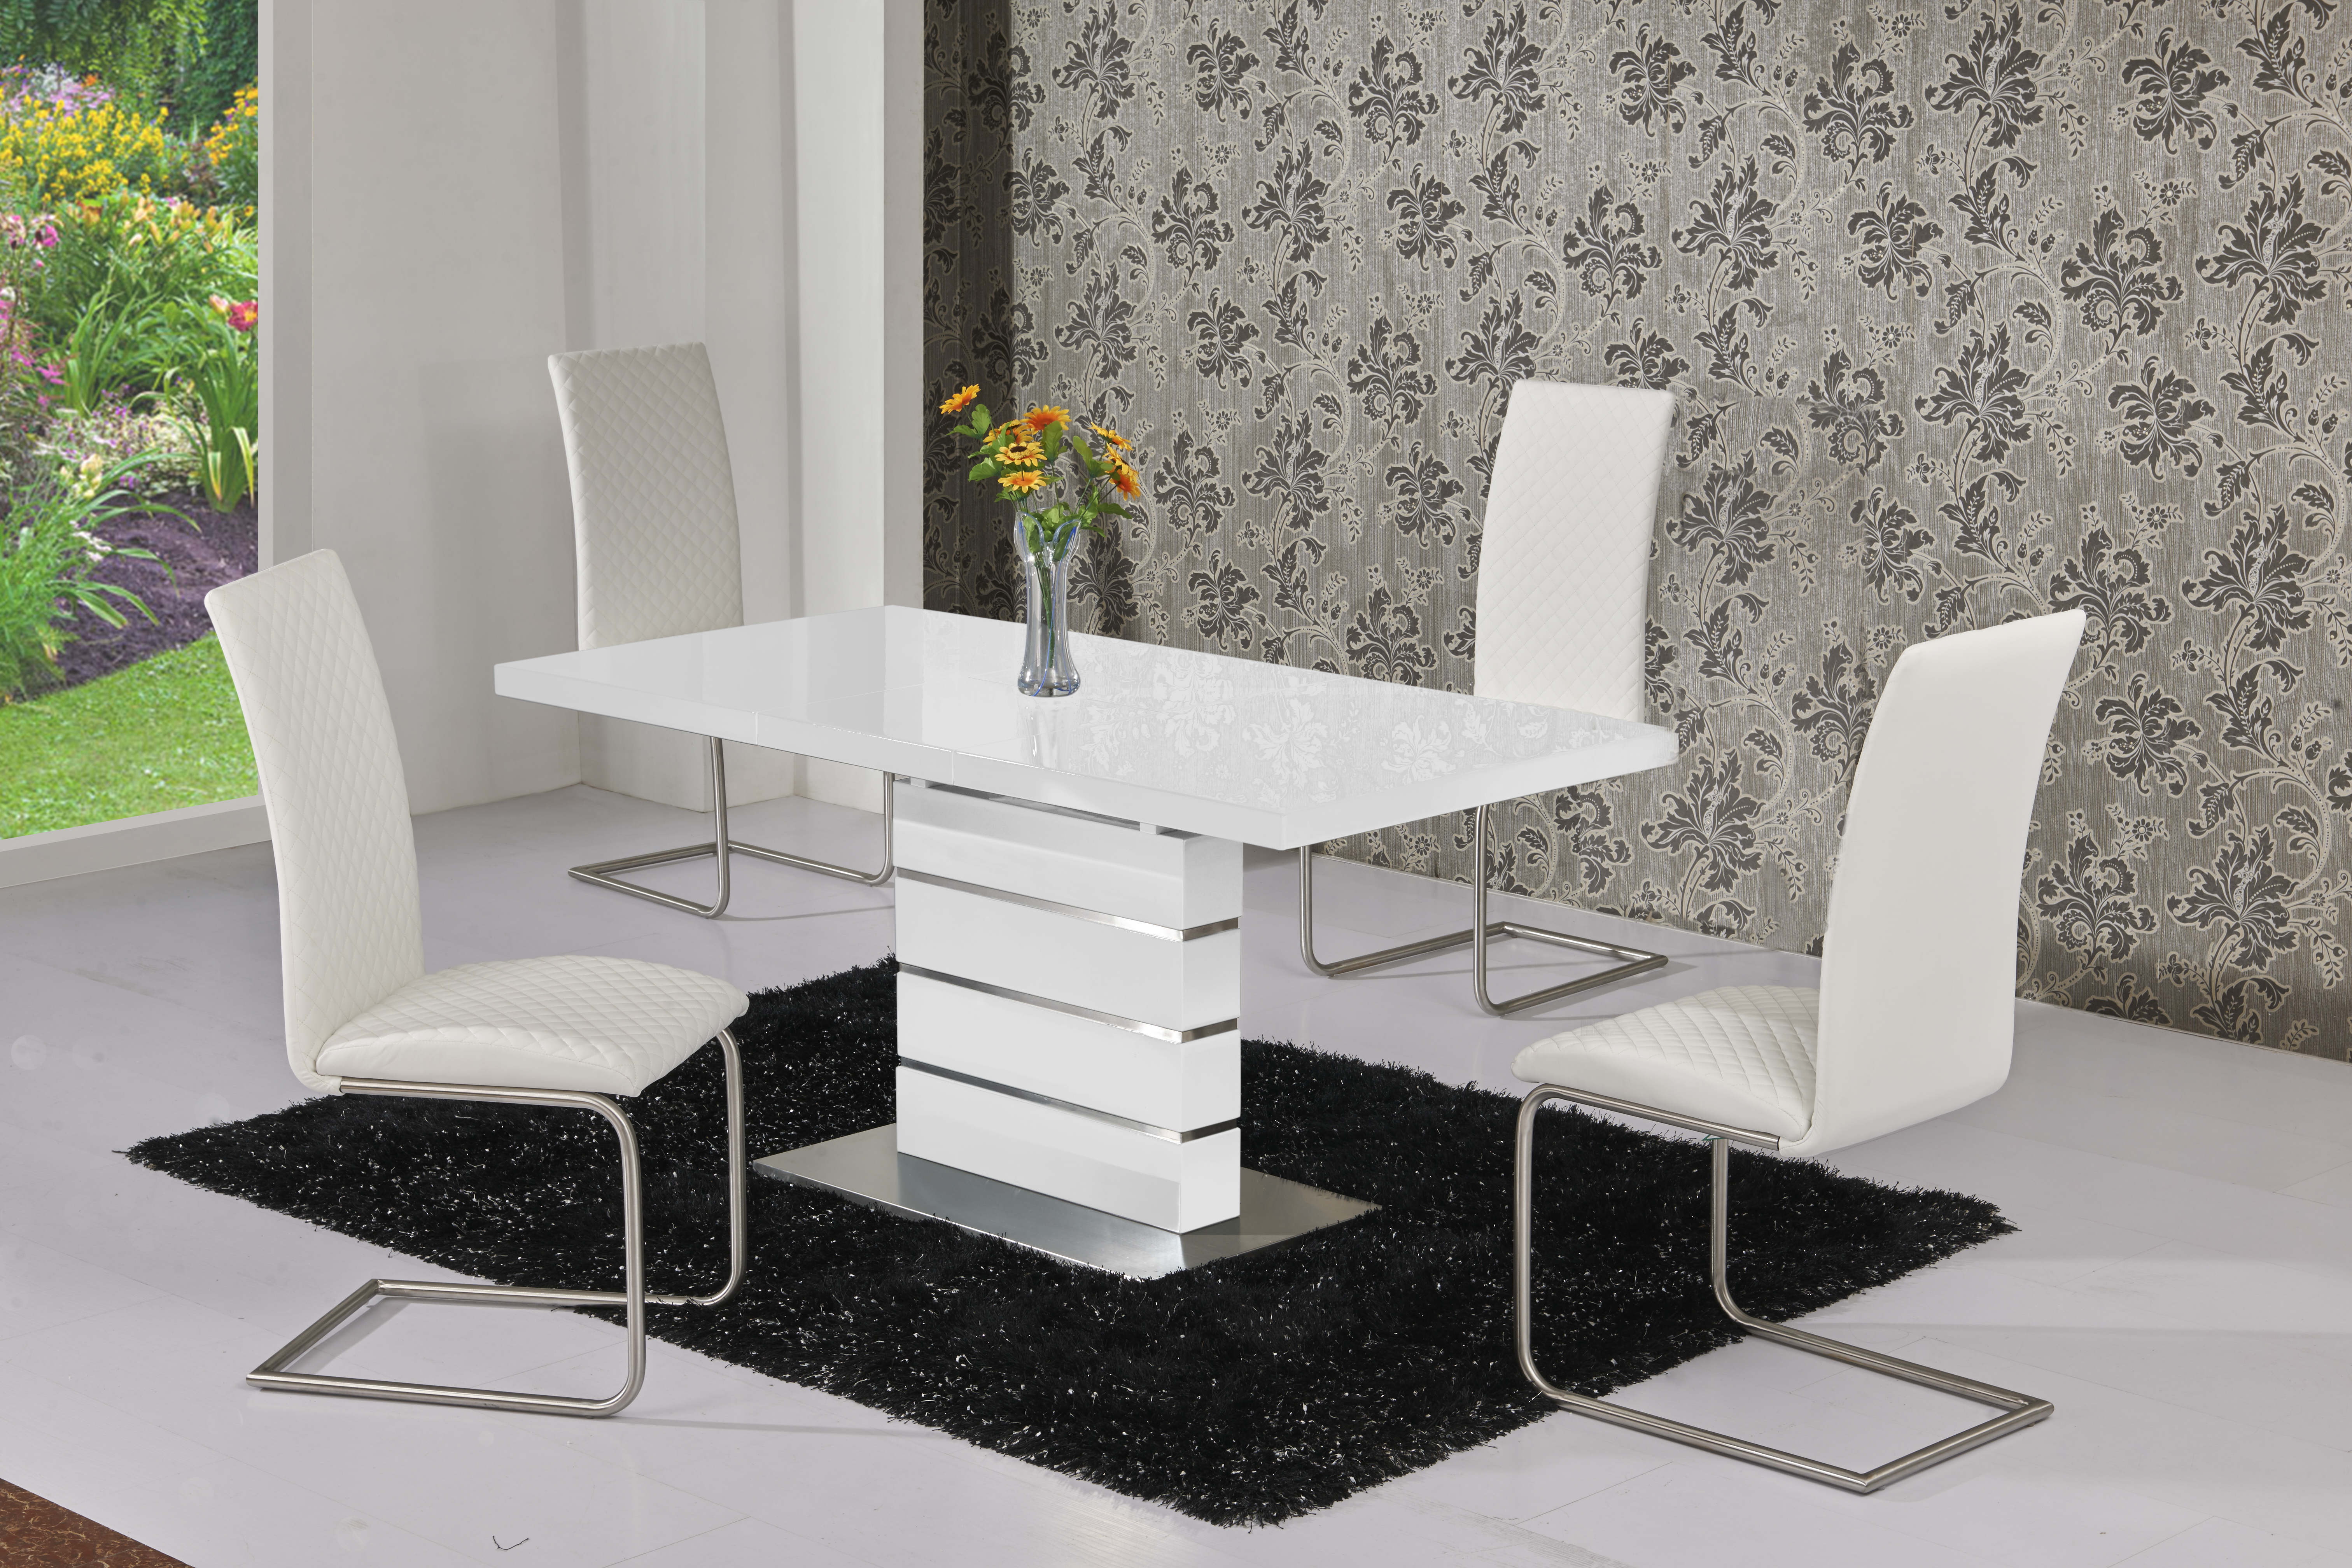 Maysan White EXT Table DTX-5501 & Mulliner White Chair CH-5024